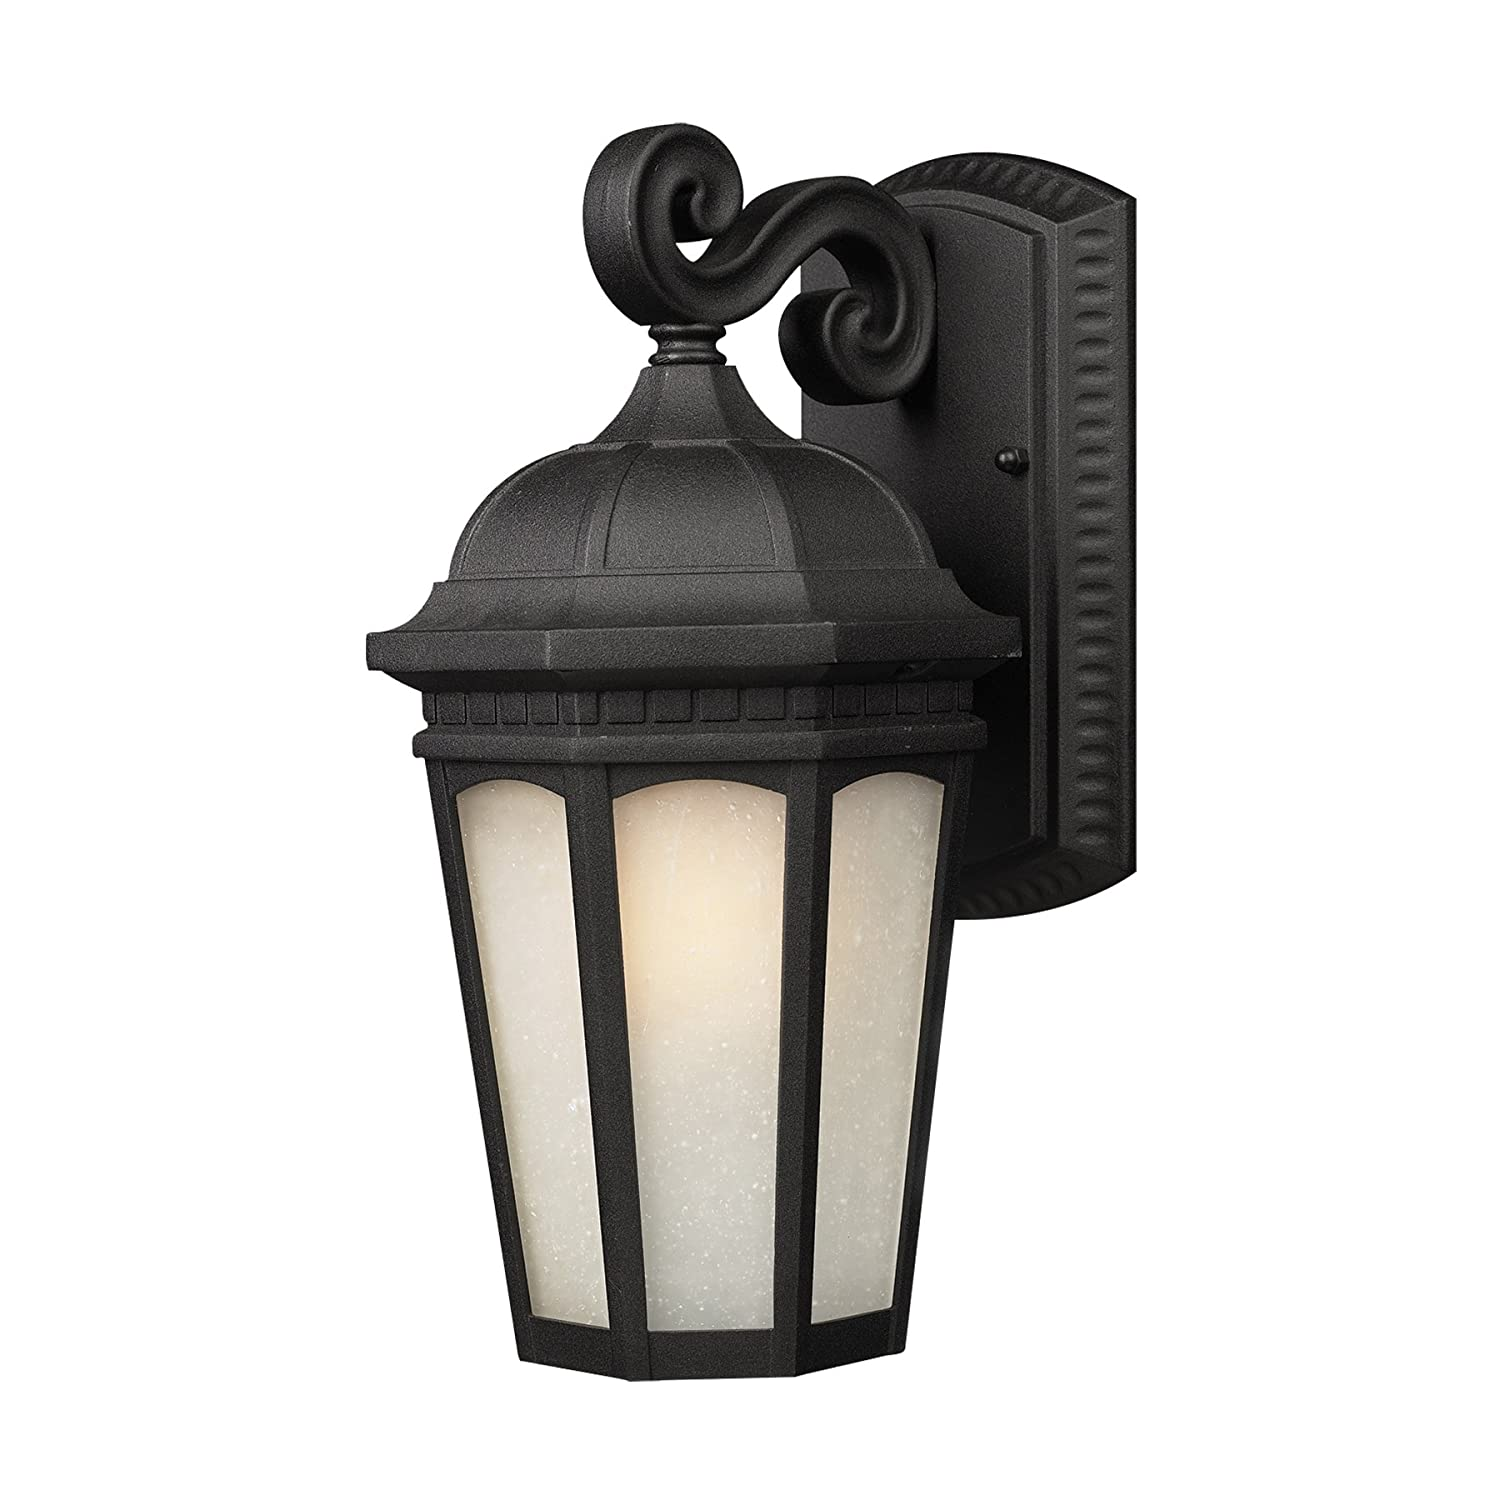 Black Finish and White Seedy Shade of Glass Material Metal Frame Z-Lite 508S-BK Newport Outdoor Wall Light